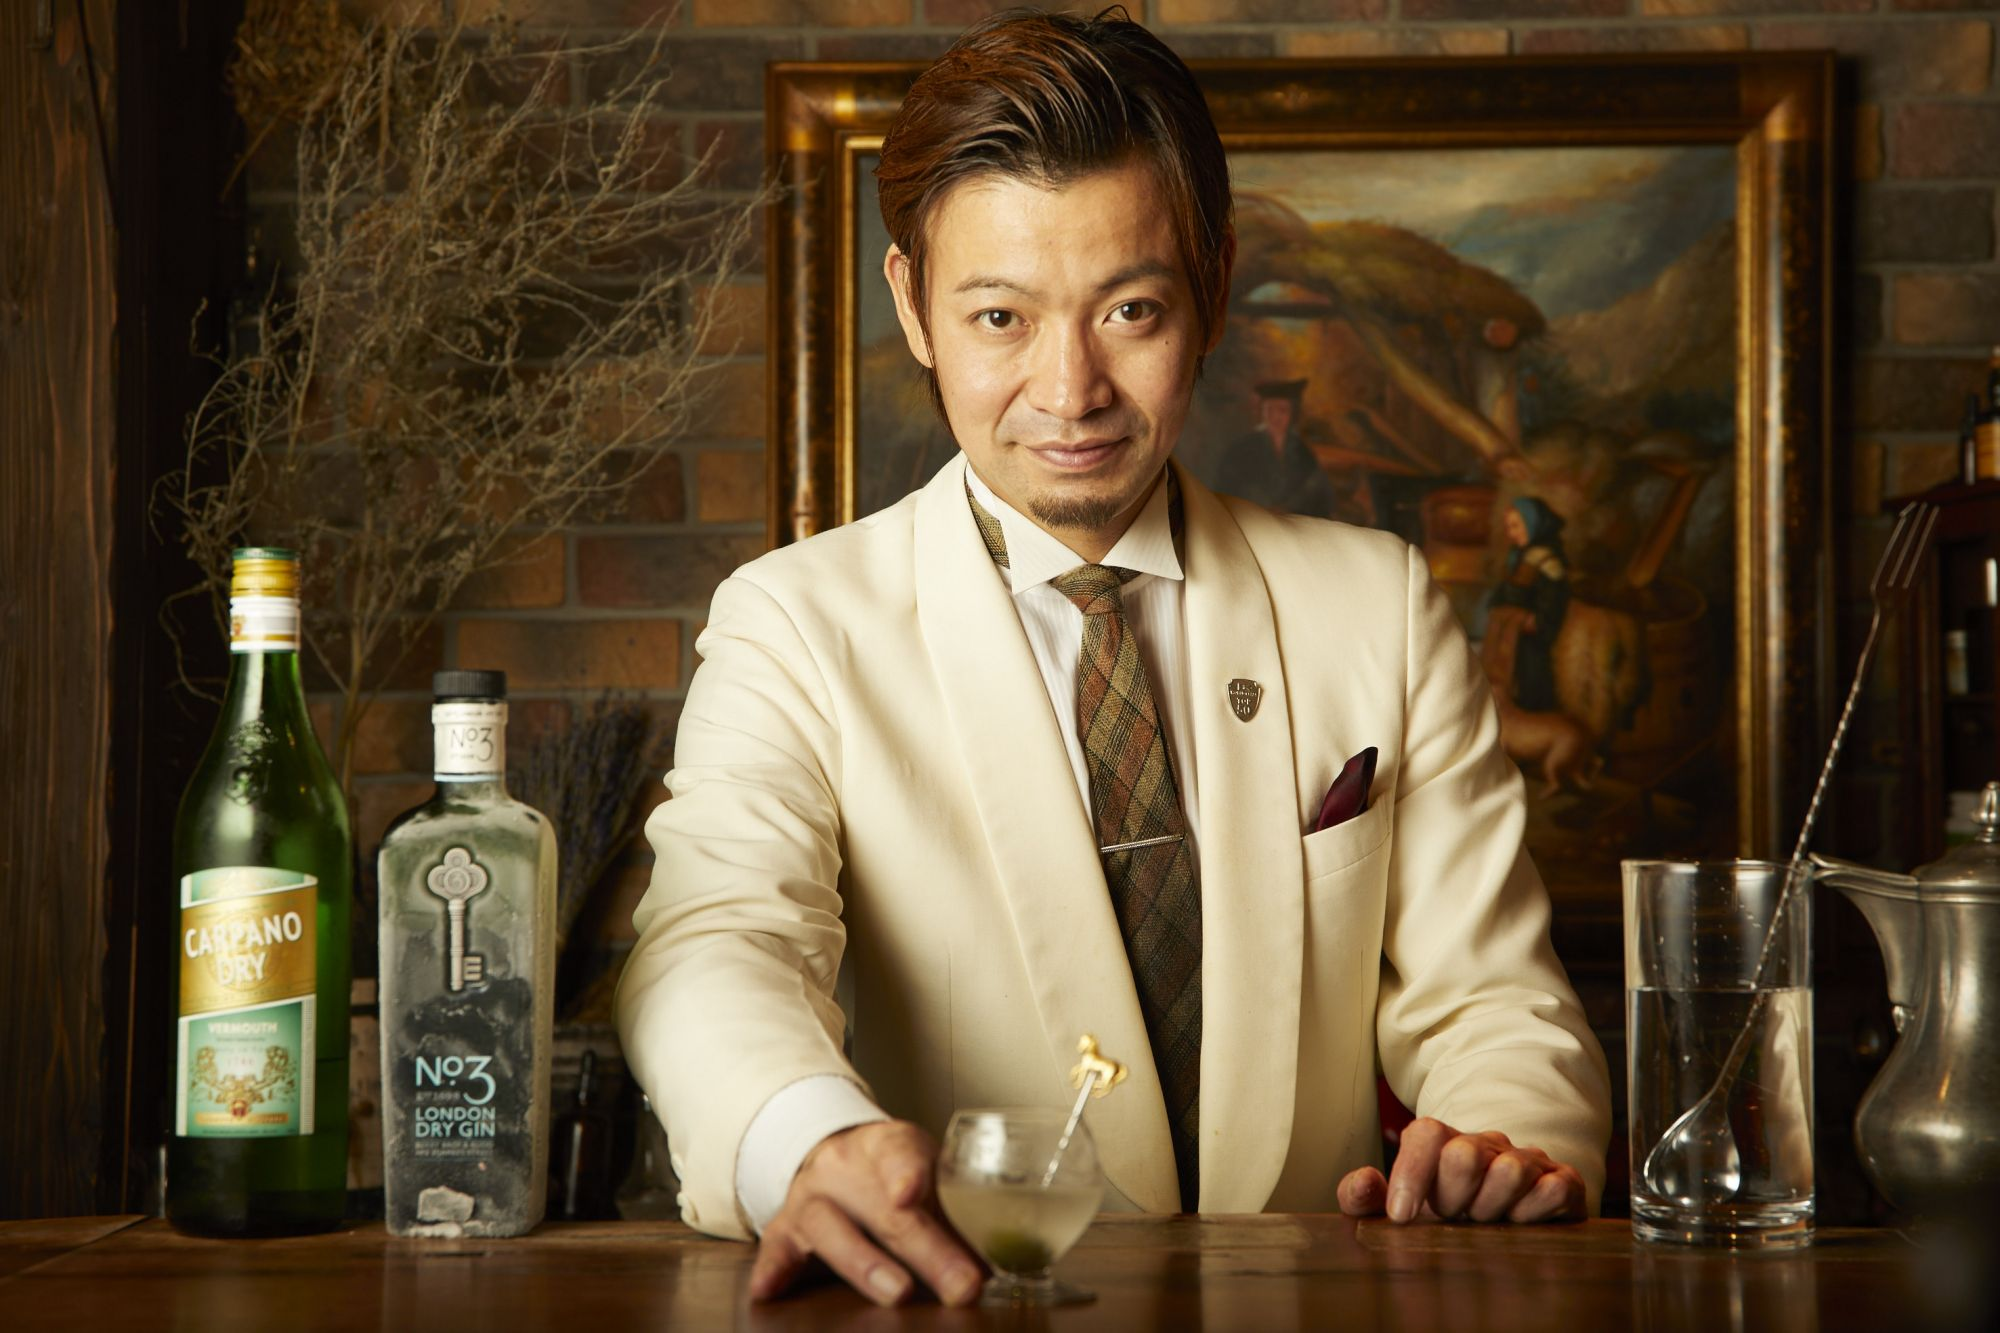 Photo: Courtesy of Asia's 50 Best Bars